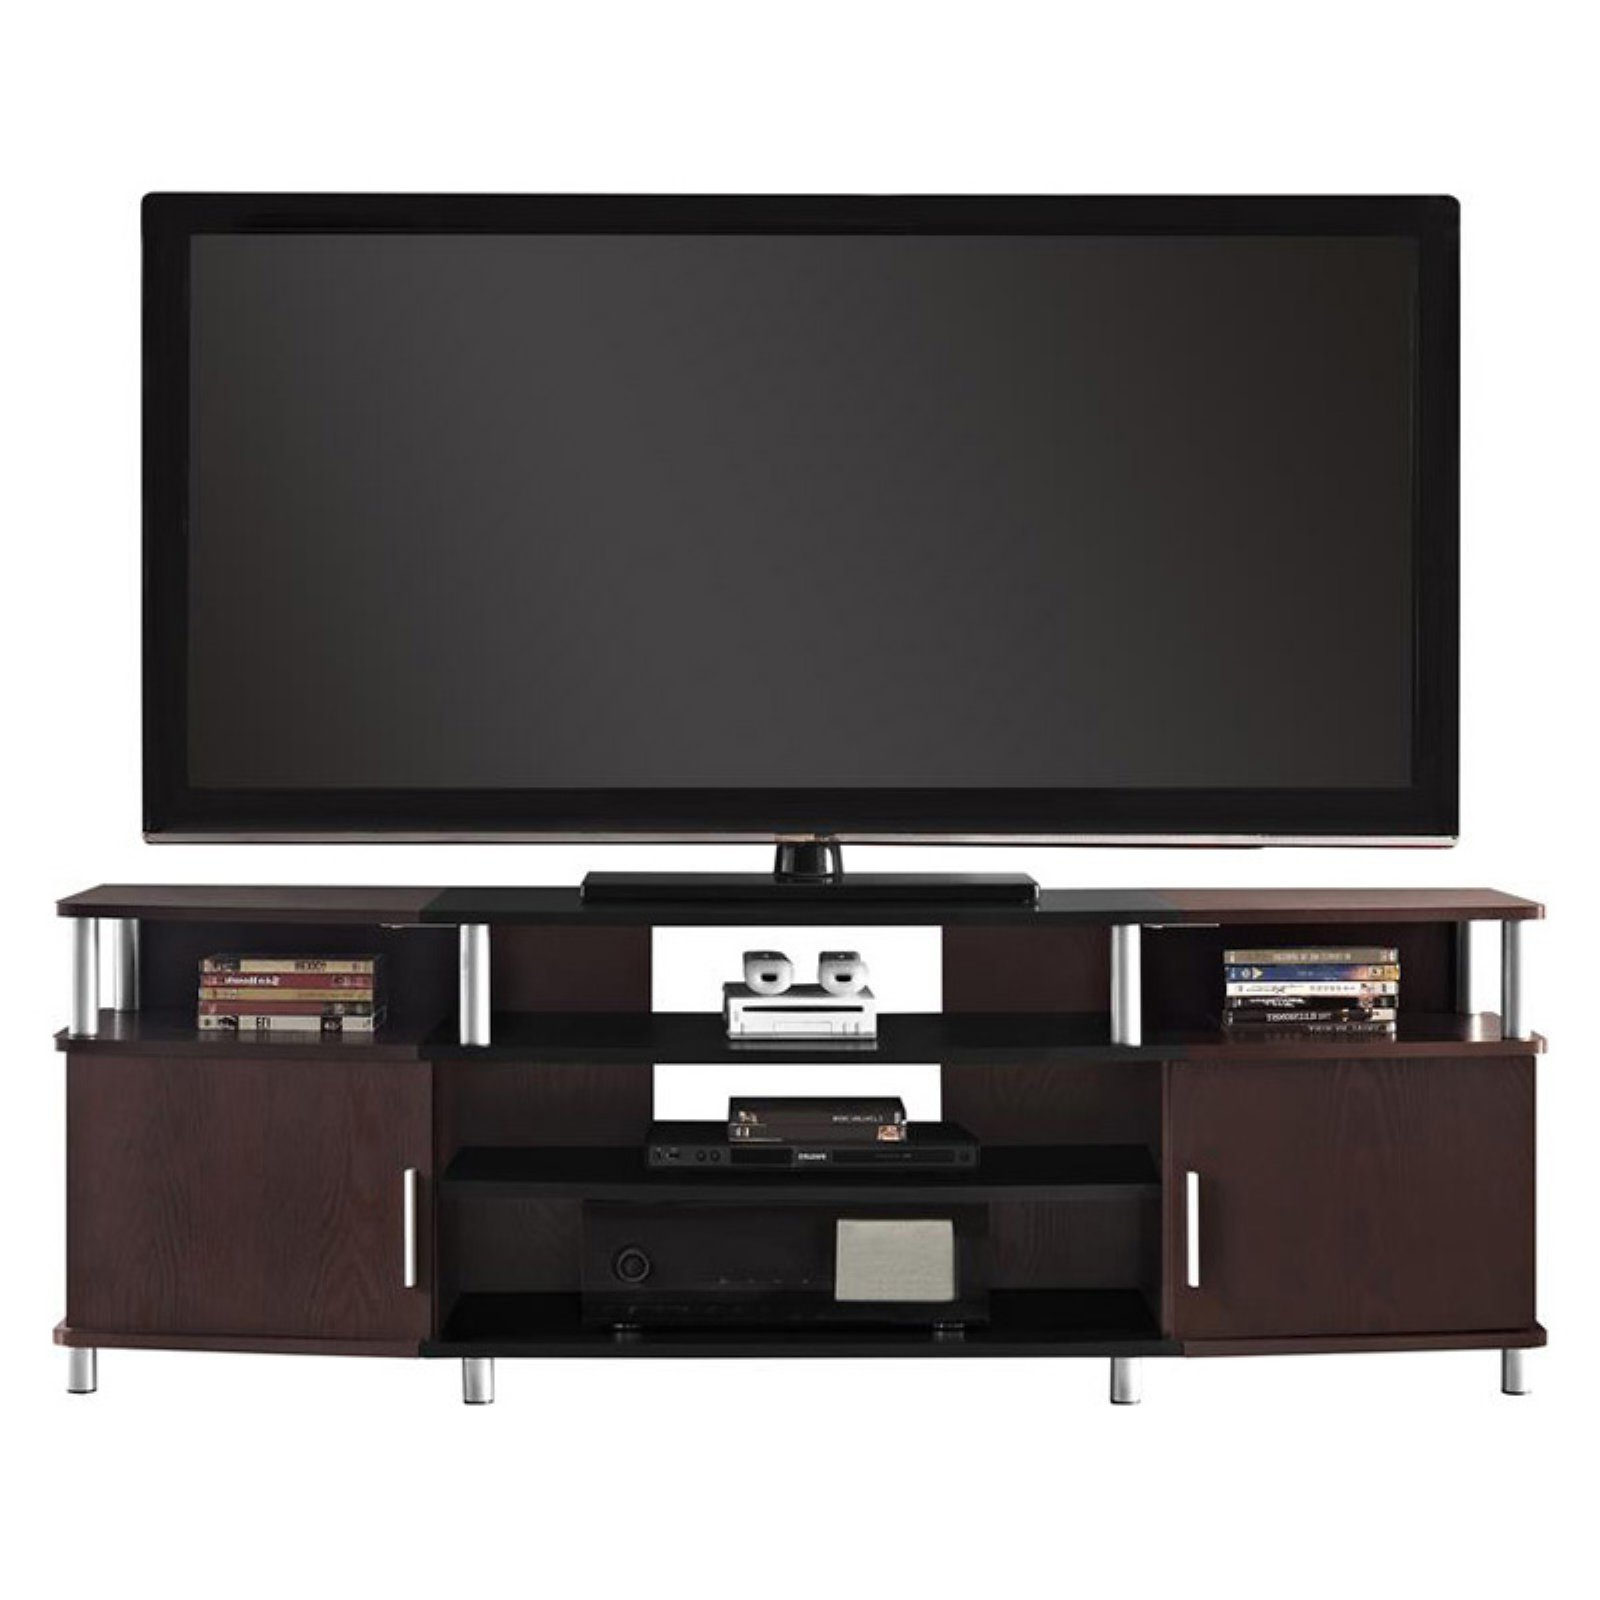 """Ameriwood Home Carson Tv Stand For Tvs Up To 70"""", Multiple With Regard To Trendy Carson Tv Stands In Black And Cherry (View 7 of 10)"""